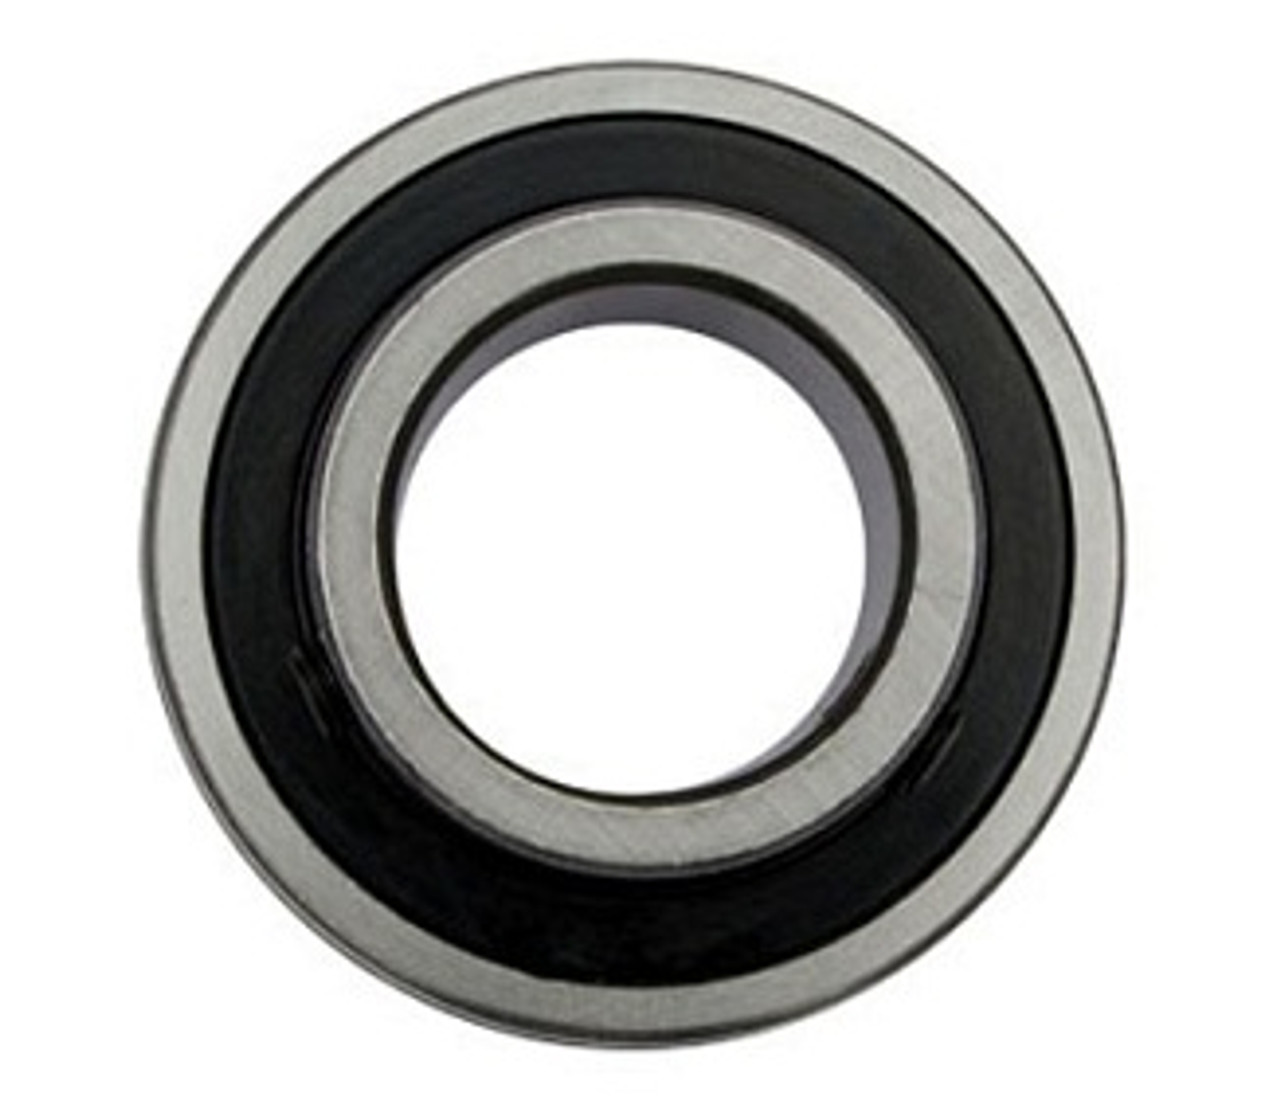 Butcher Boy B12,B14,B16,SA16 & SA20 - Lower Main Bearing - BB LMBN/2